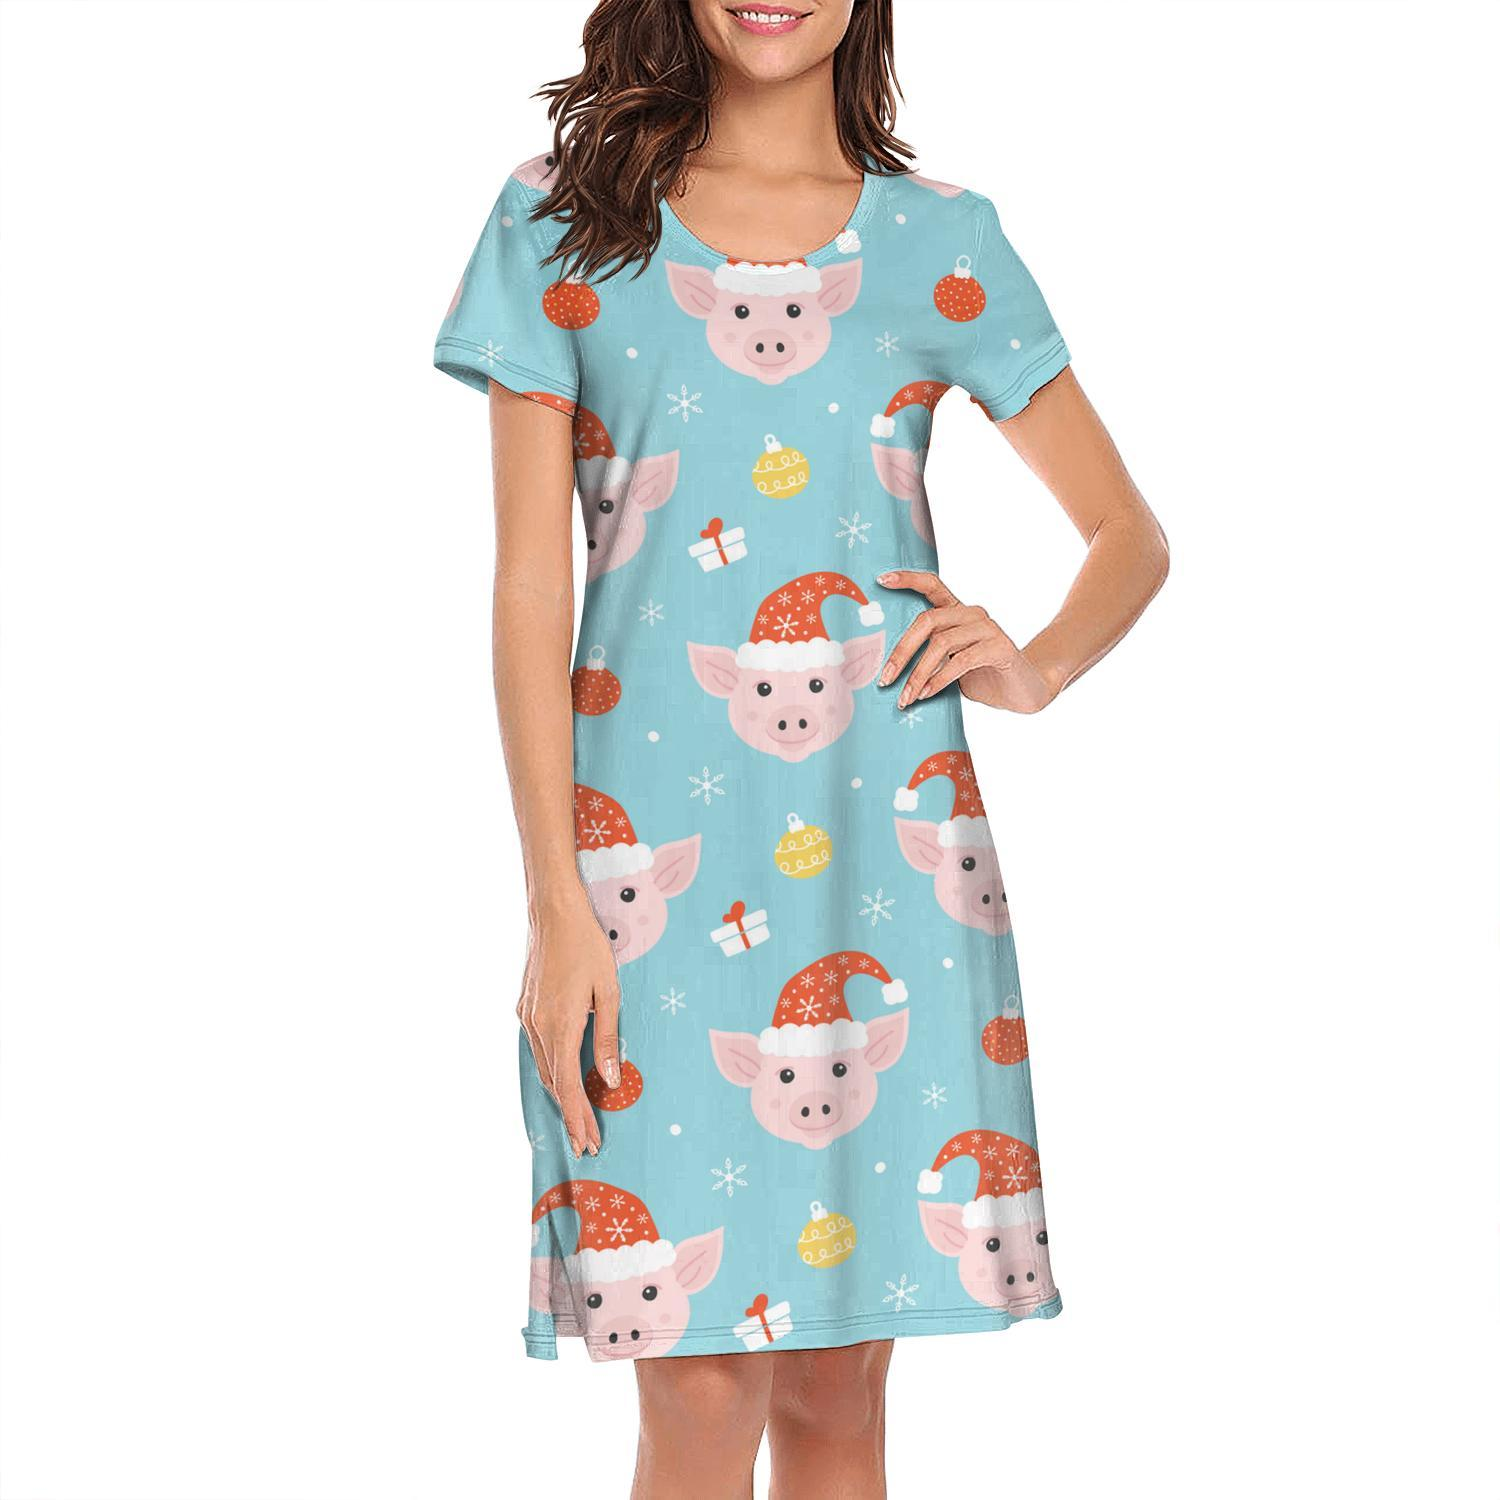 Nighties for women Cute Pink Pig Nose With Happy New Year design cool printing short sleeve nightdress Blue Christmas Pigs Head Presents